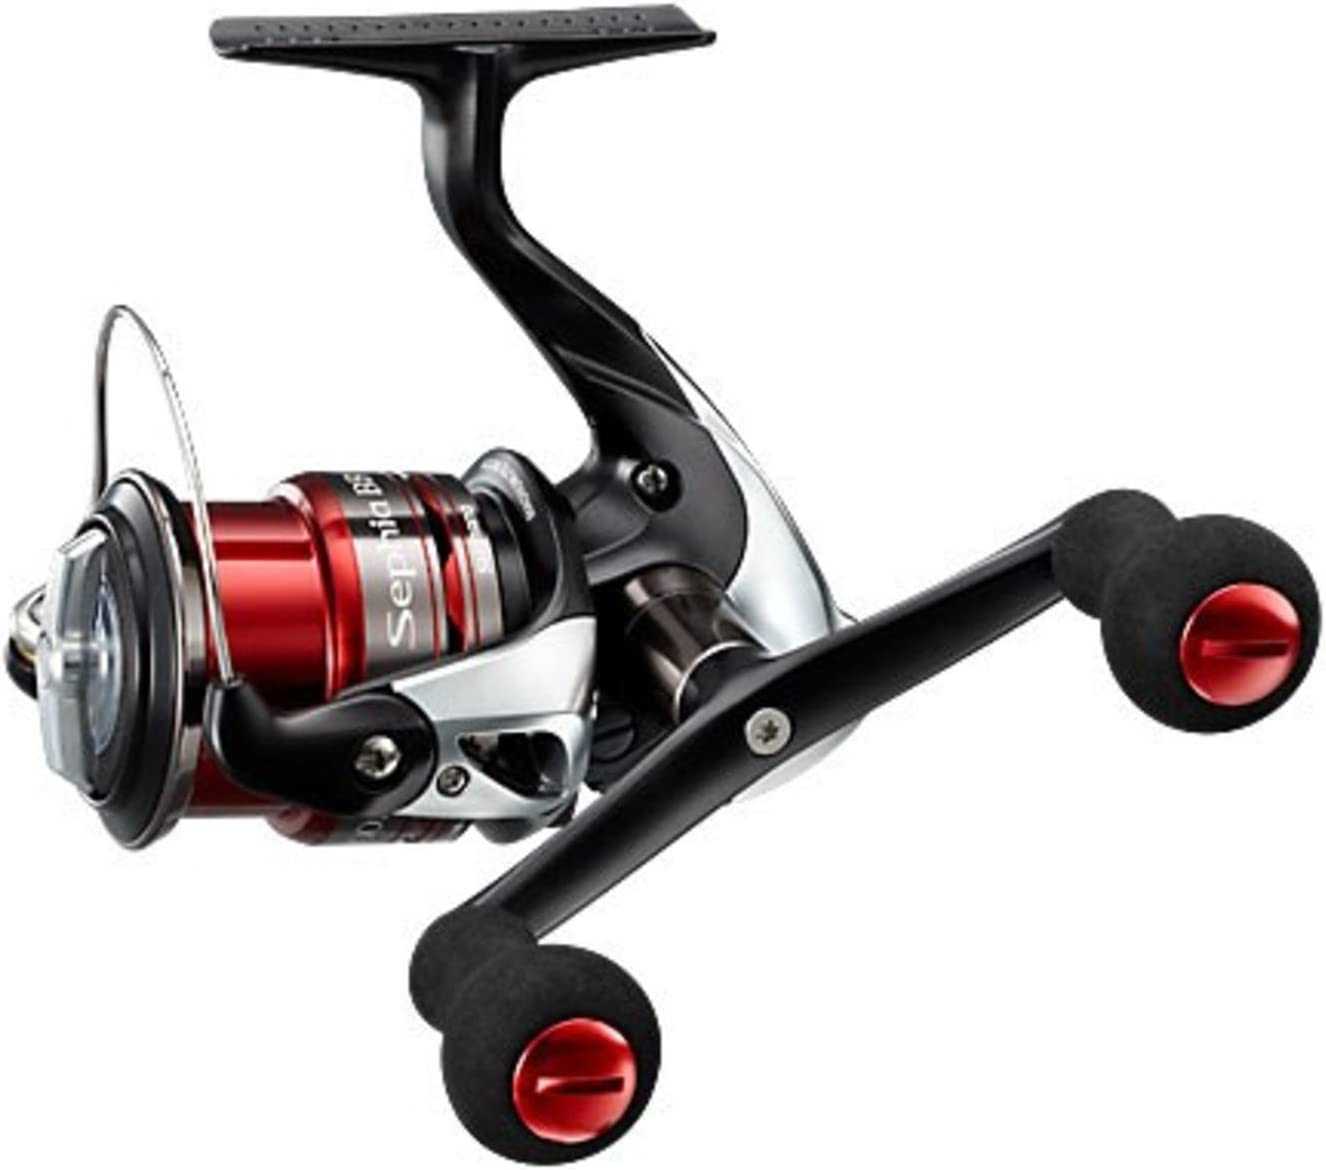 SHIMANO 13 SEPHIA BB C3000S A-RB Spinning Reel from Japan New